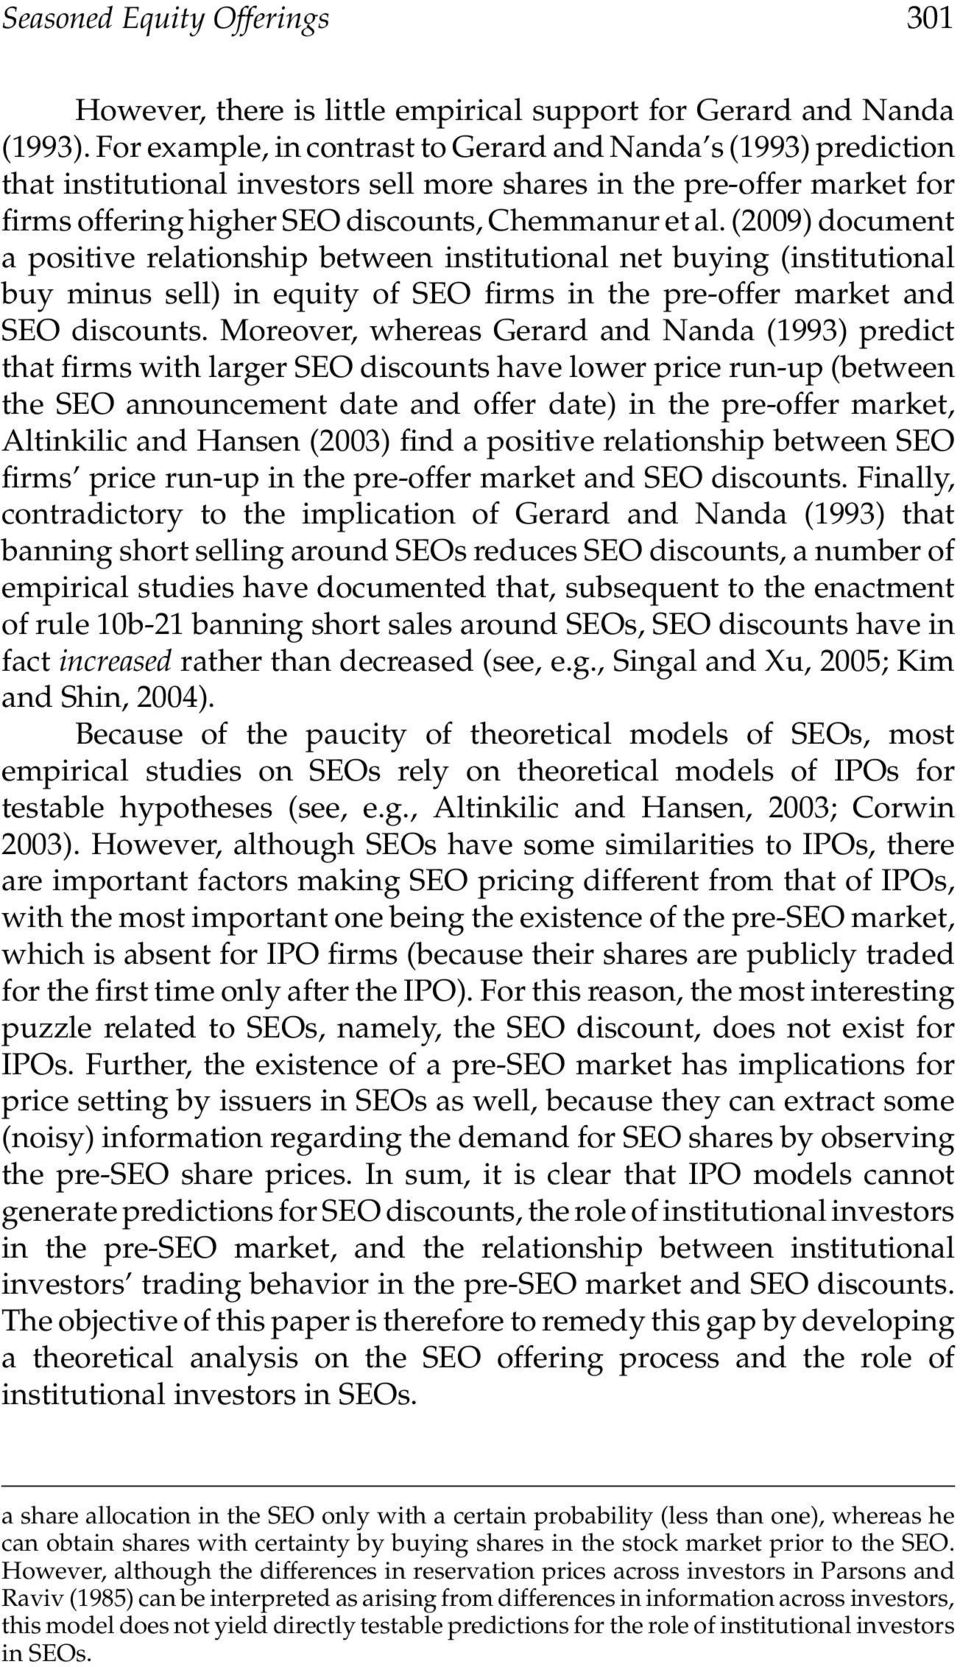 (2009) document a positive relationship between institutional net buying (institutional buy minus sell) in equity of SEO firms in the pre-offer market and SEO discounts.